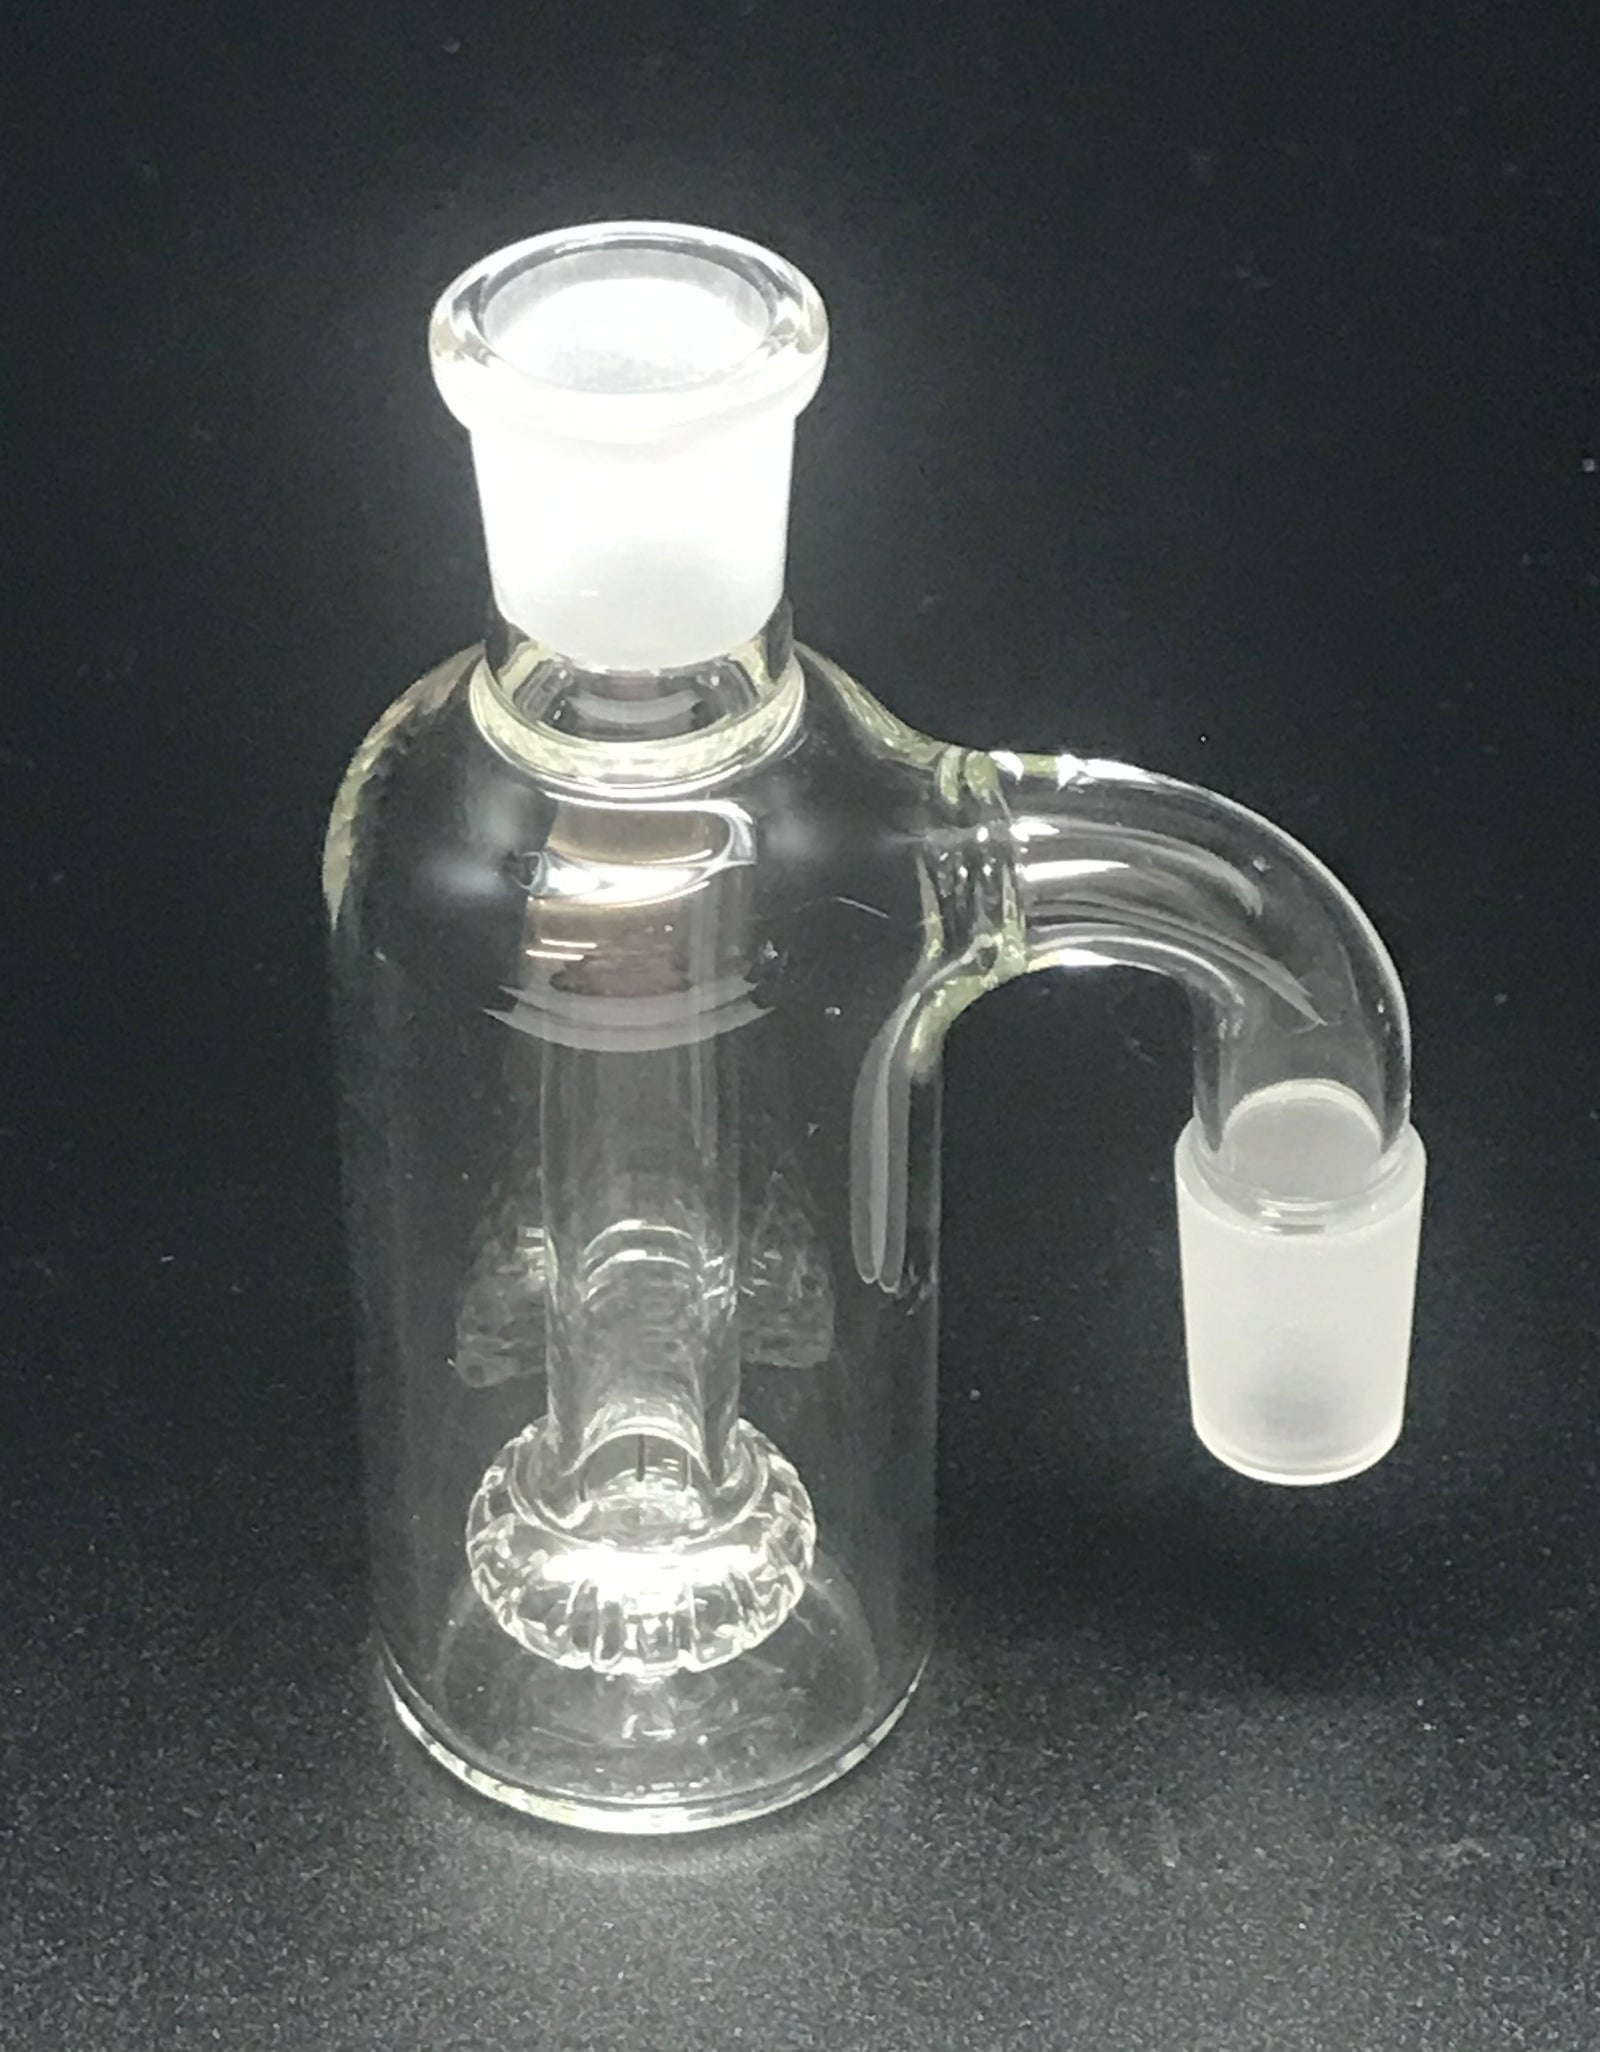 Ash Catcher - 19m Male 90 Degree Showerhead